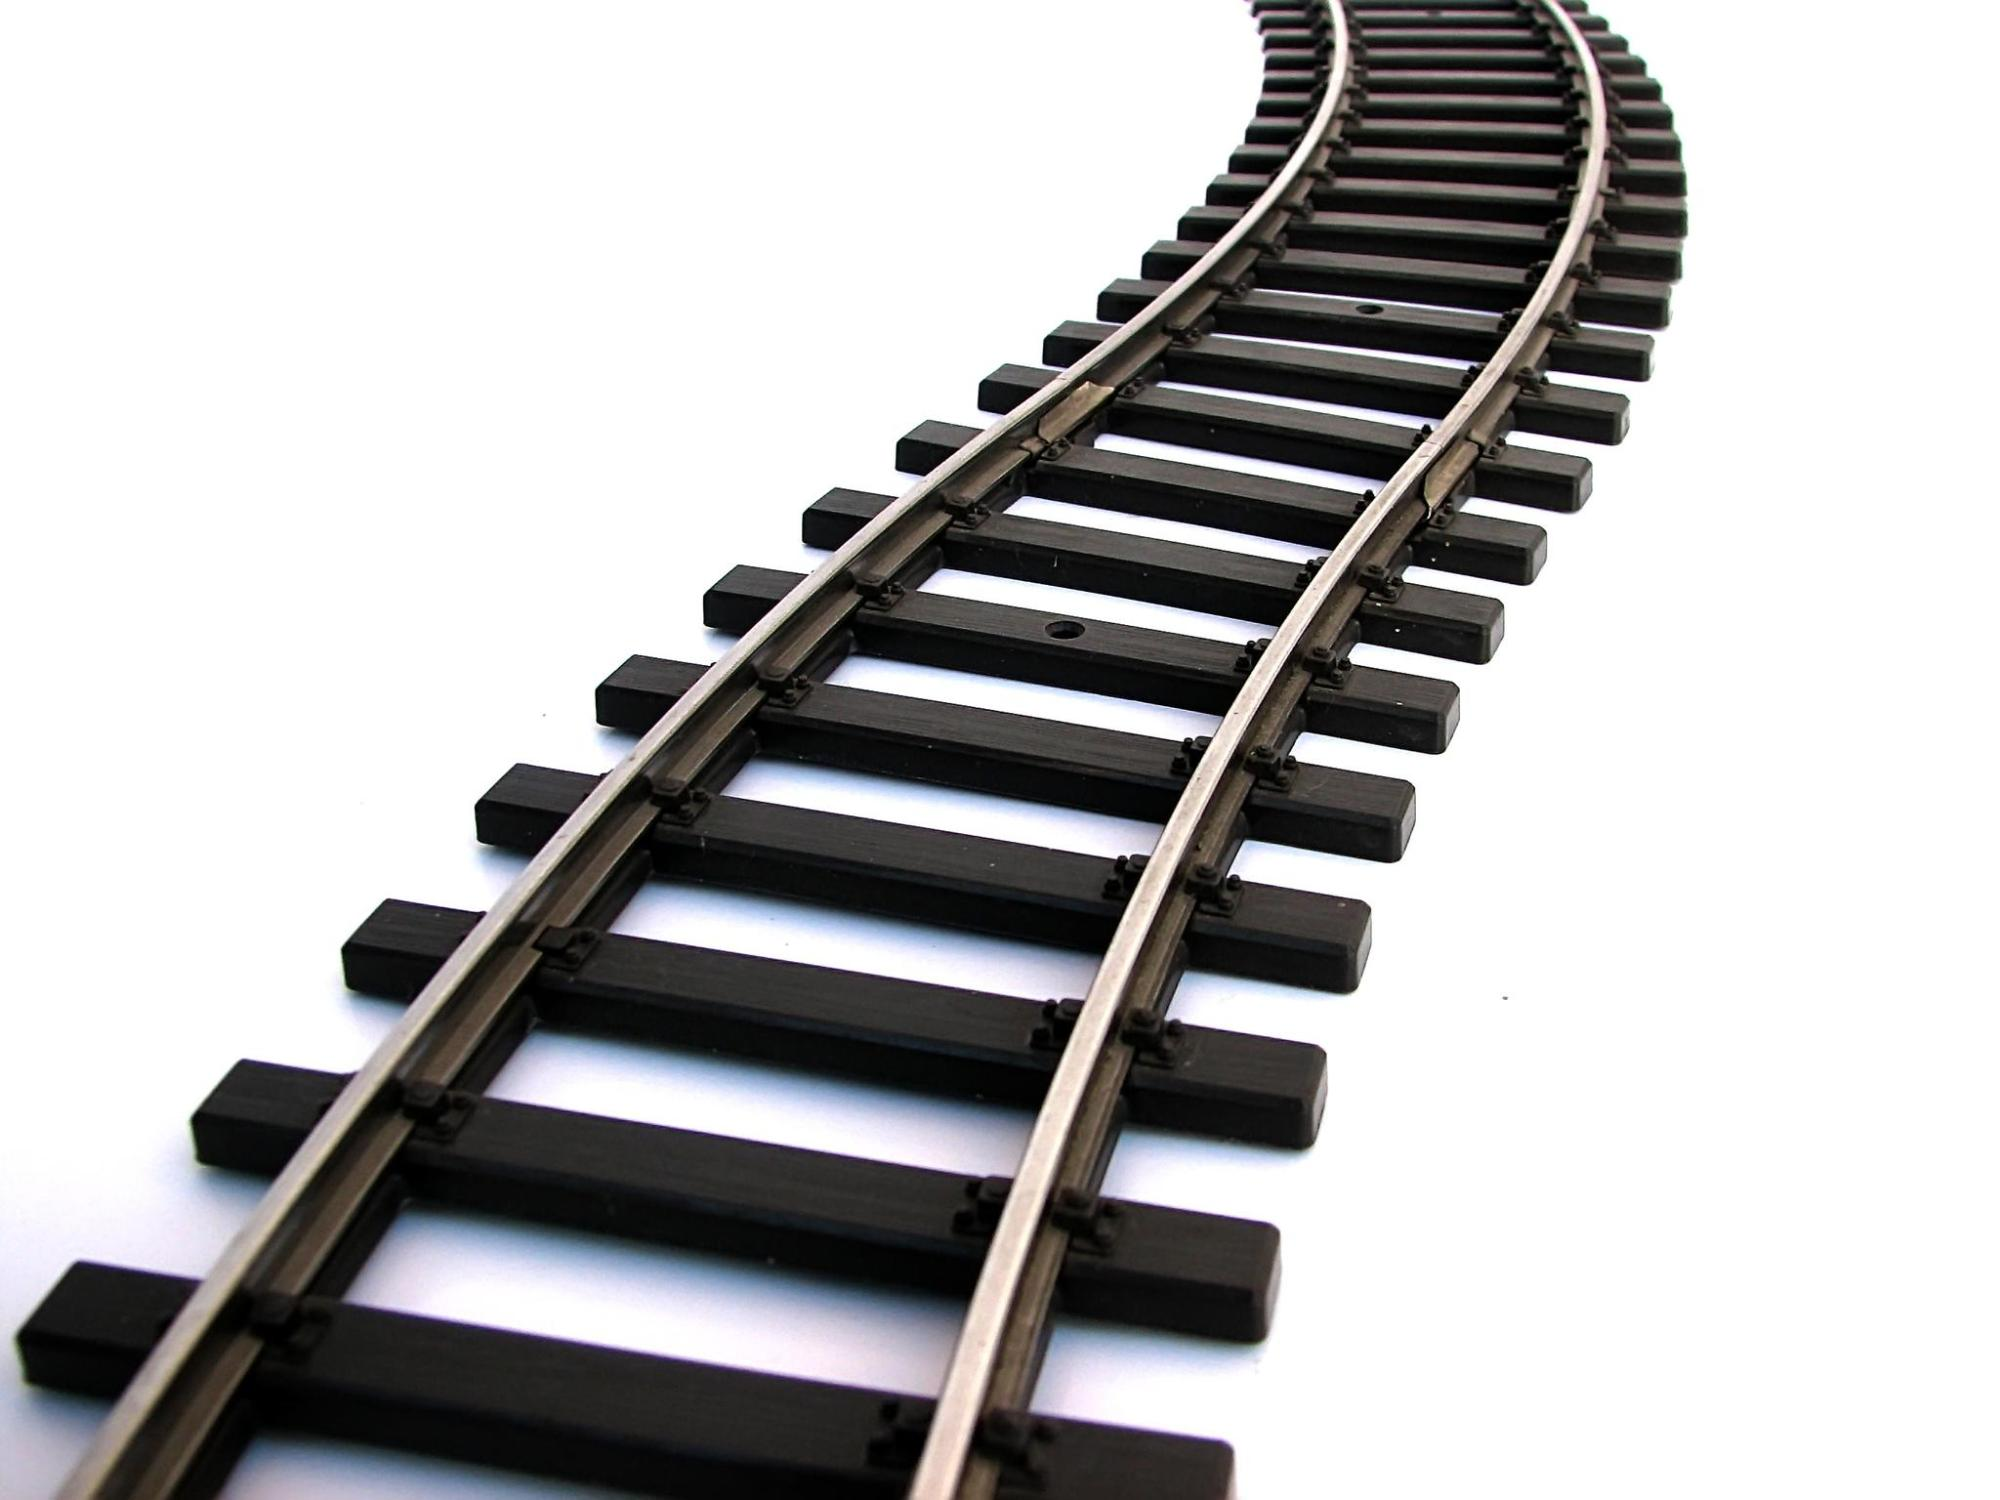 hight resolution of train track clipart